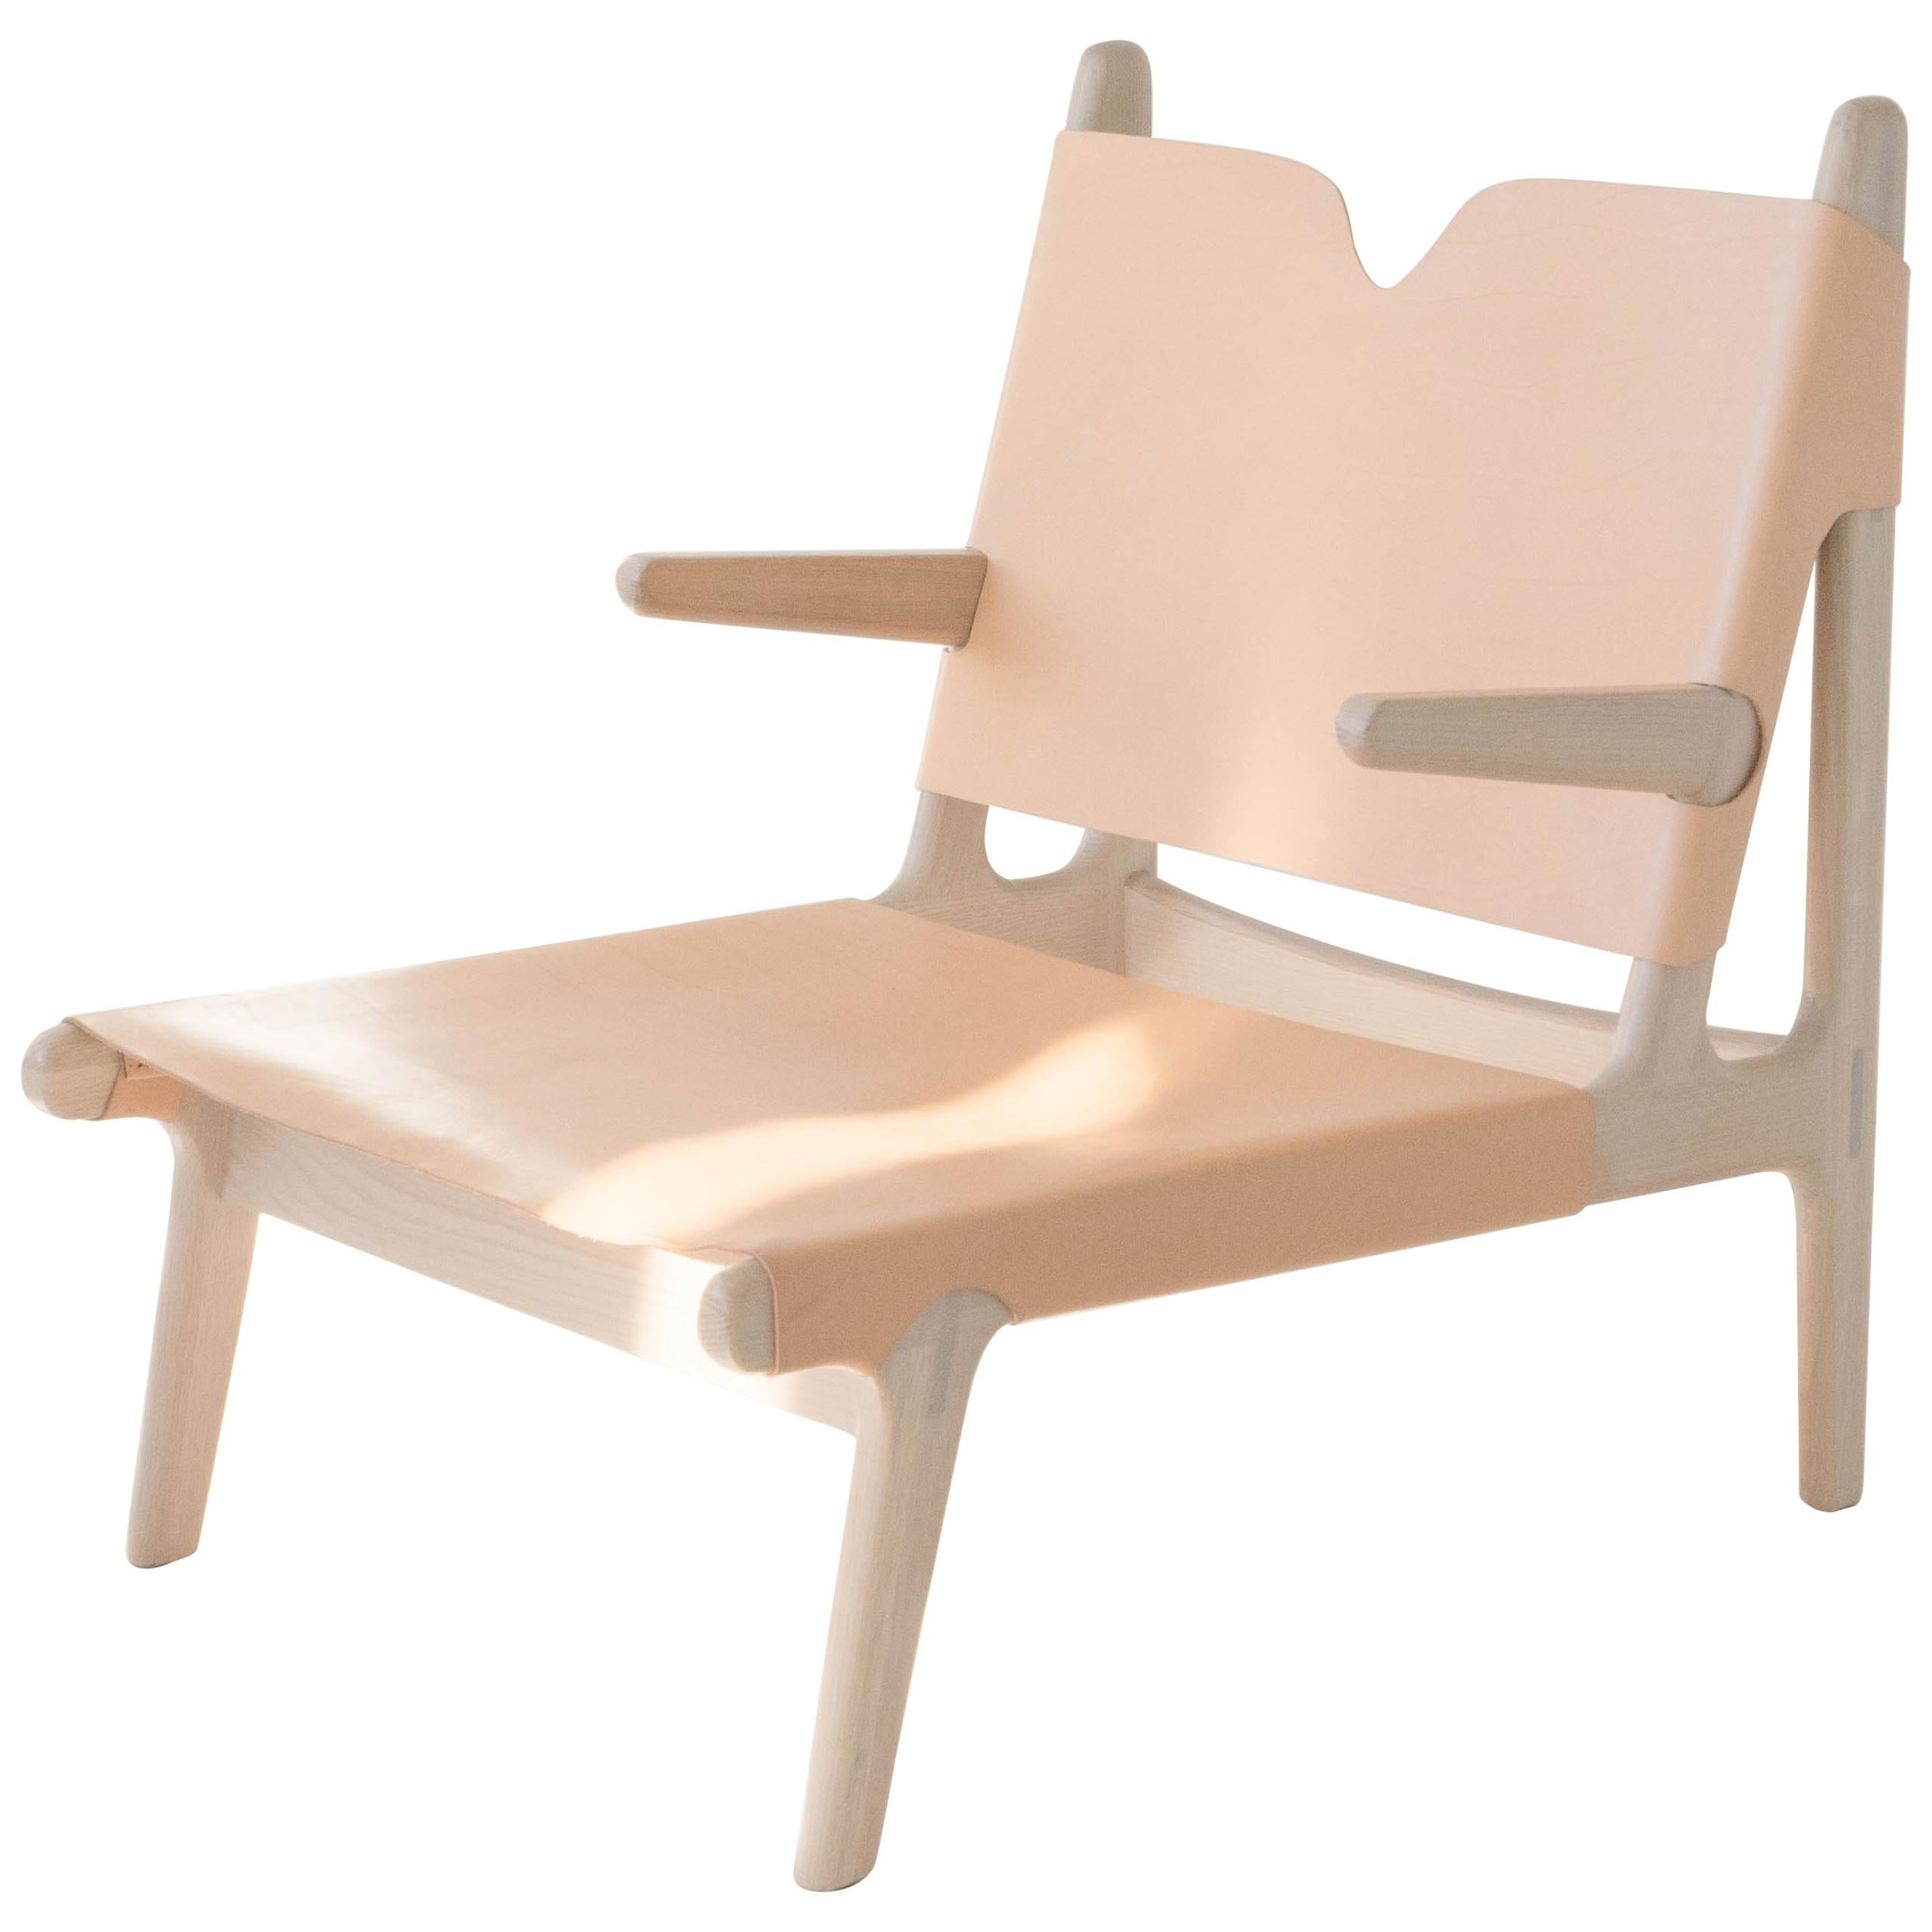 Plume Chair by Sun at Six, Nude Midcentury Lounge Chair in Wood, Leather